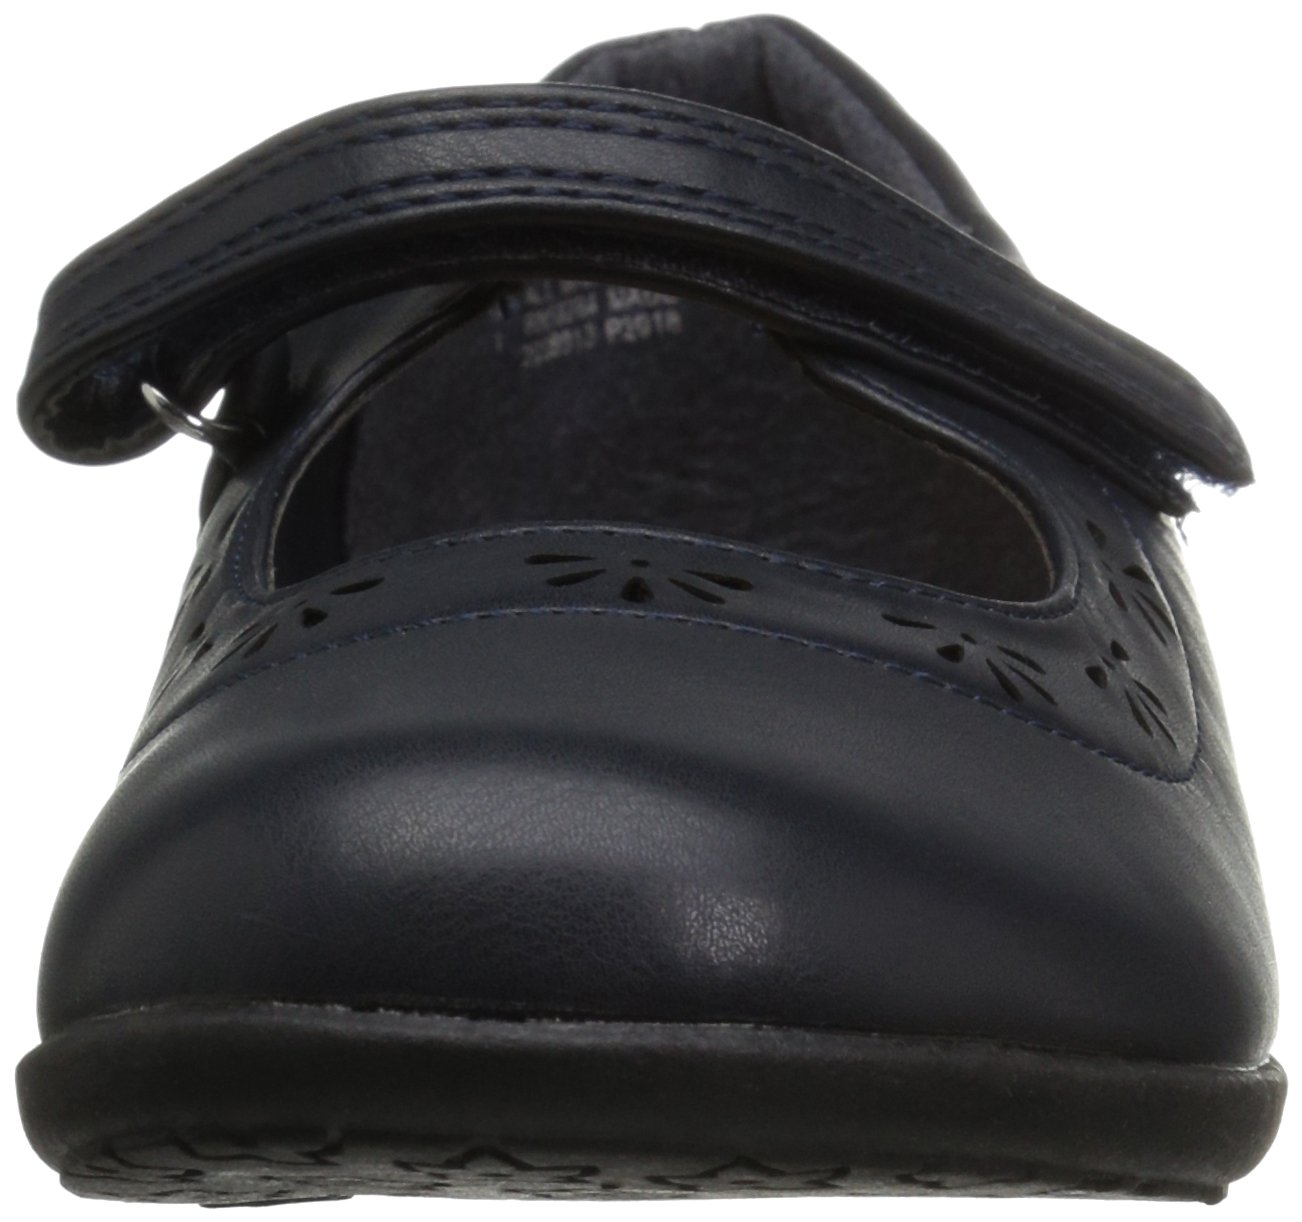 The Children's Place Girls' E BG Unif Class Uniform Dress Shoe, New Navy, Youth 1 Youth US Big Kid by The Children's Place (Image #4)